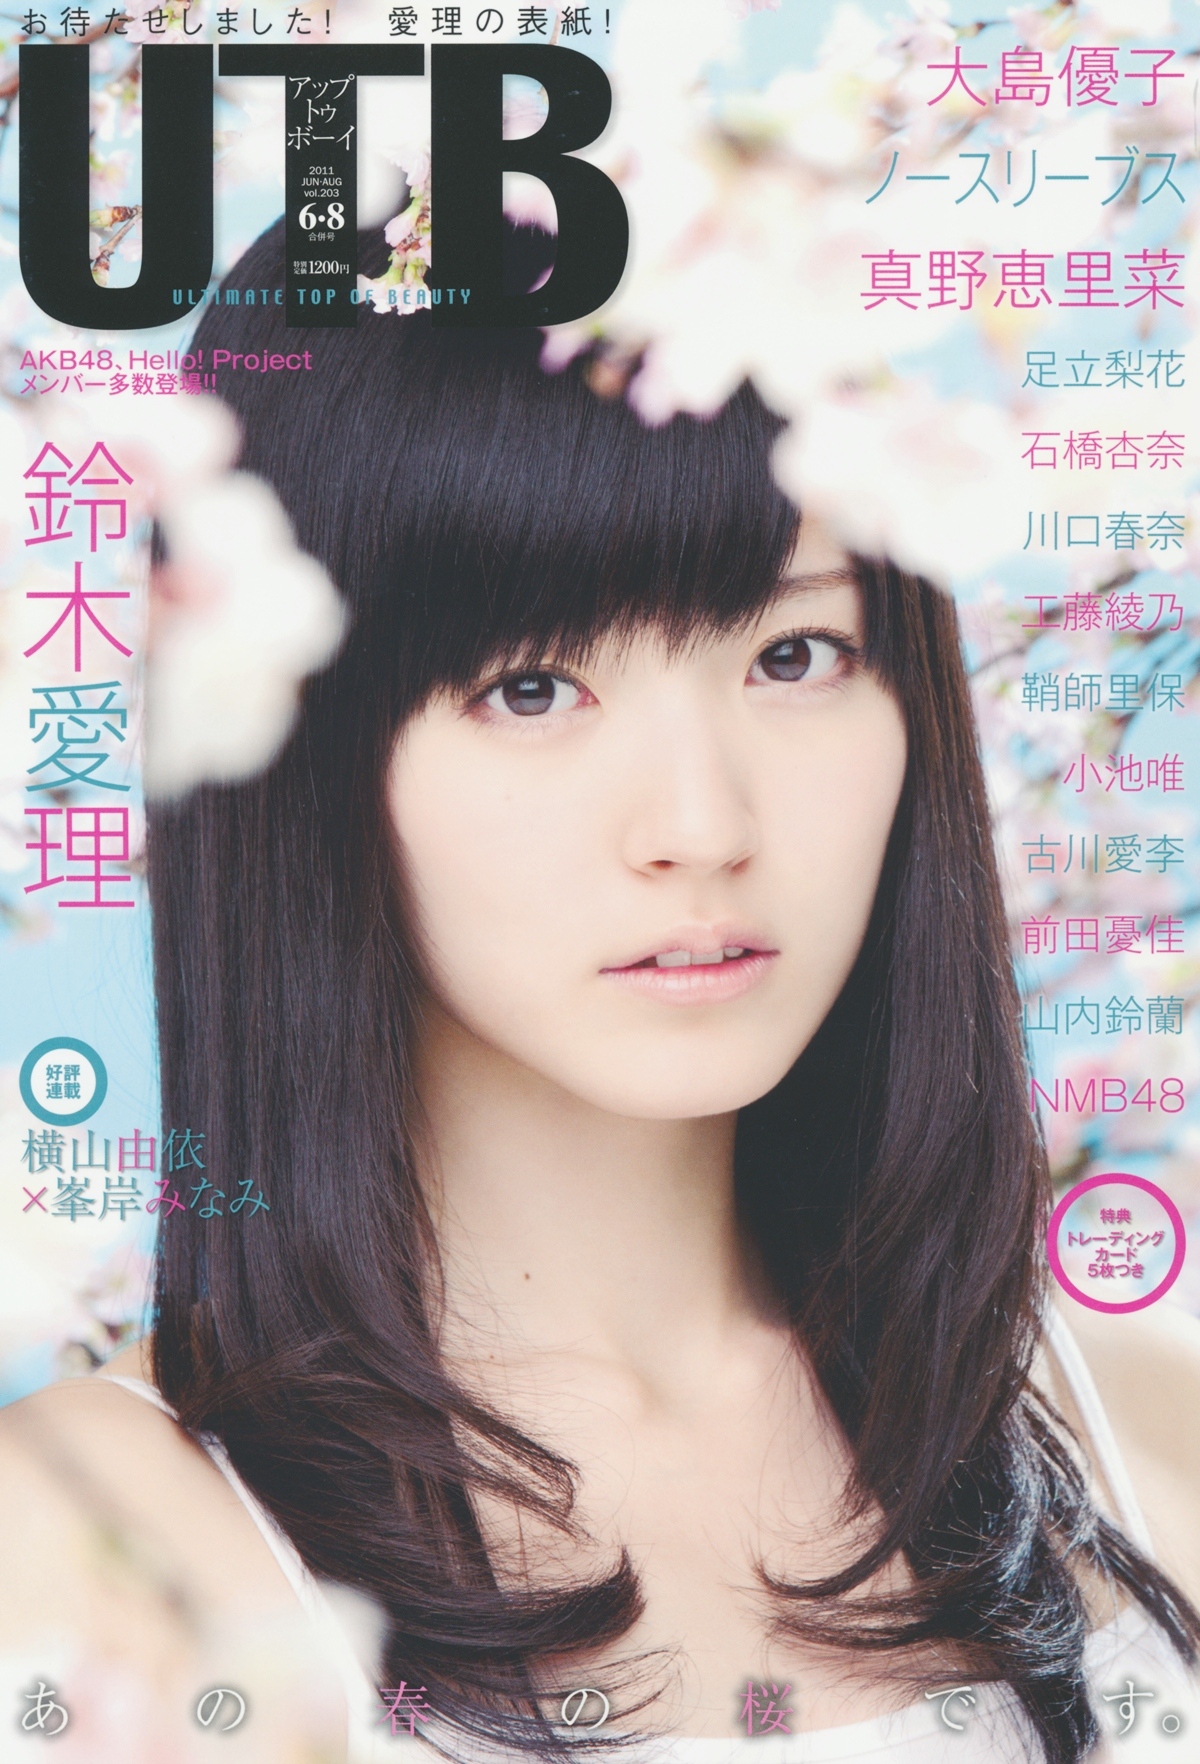 [UTB] 2011 Vol.203 Airi Suzuki 鈴木愛理 [107P102MB]Real Street Angels